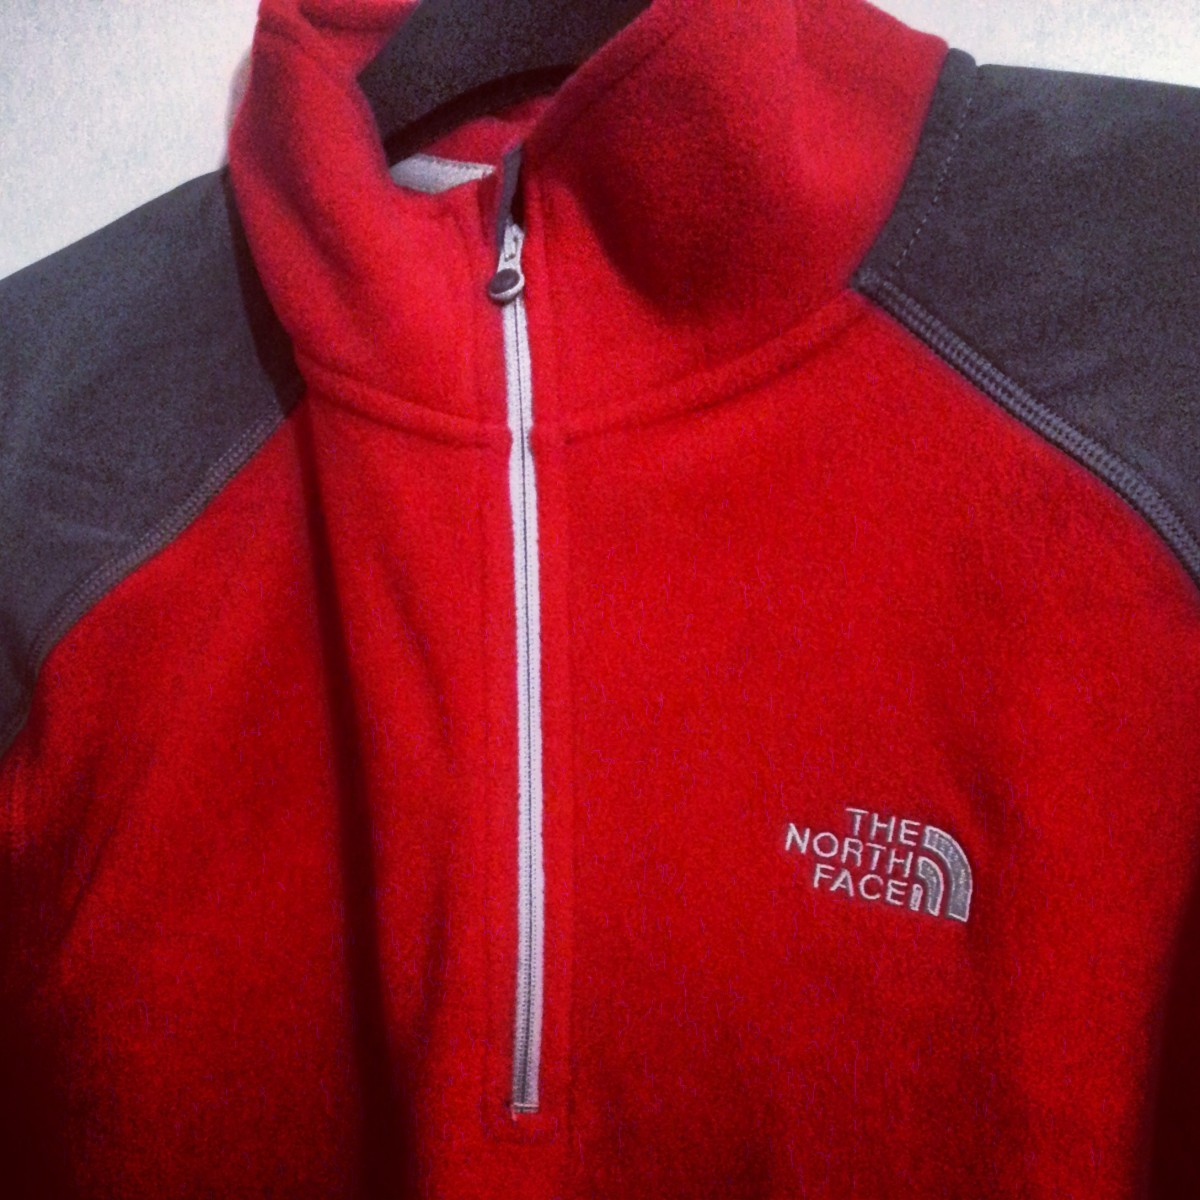 Warmth without the weight: North Face Polartec fleece